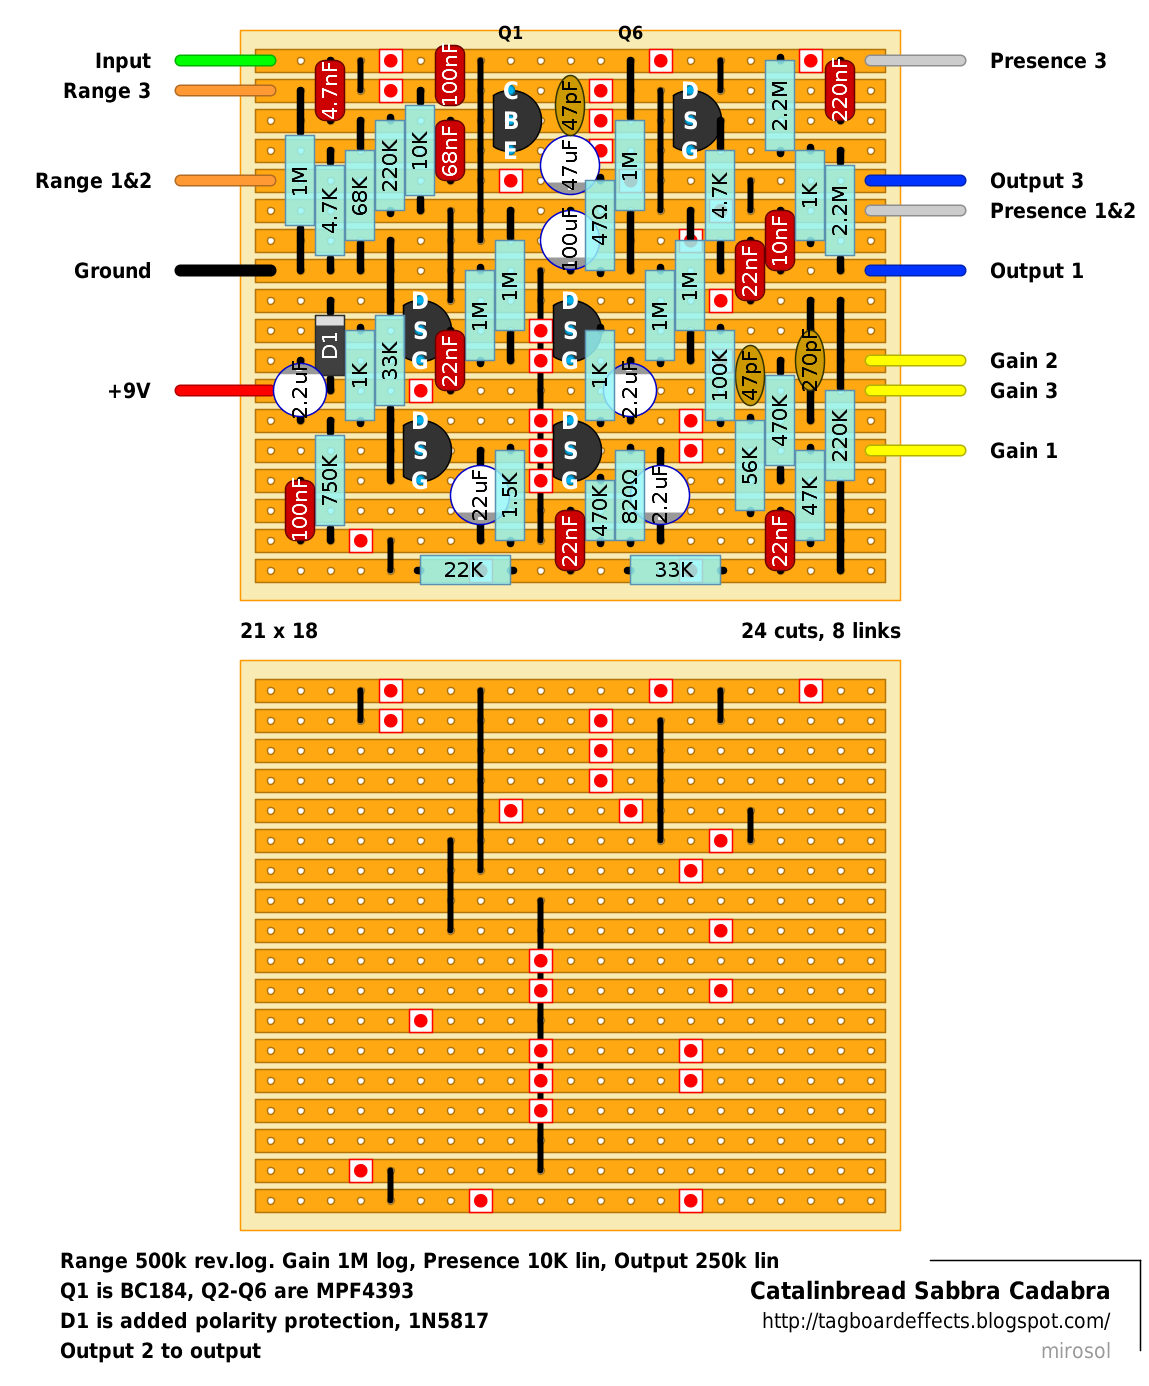 guitar fx layouts catalinb sabbra cadabra update 22 3 2015 there were couple minor issues the schematic both fixed for this version of the layout